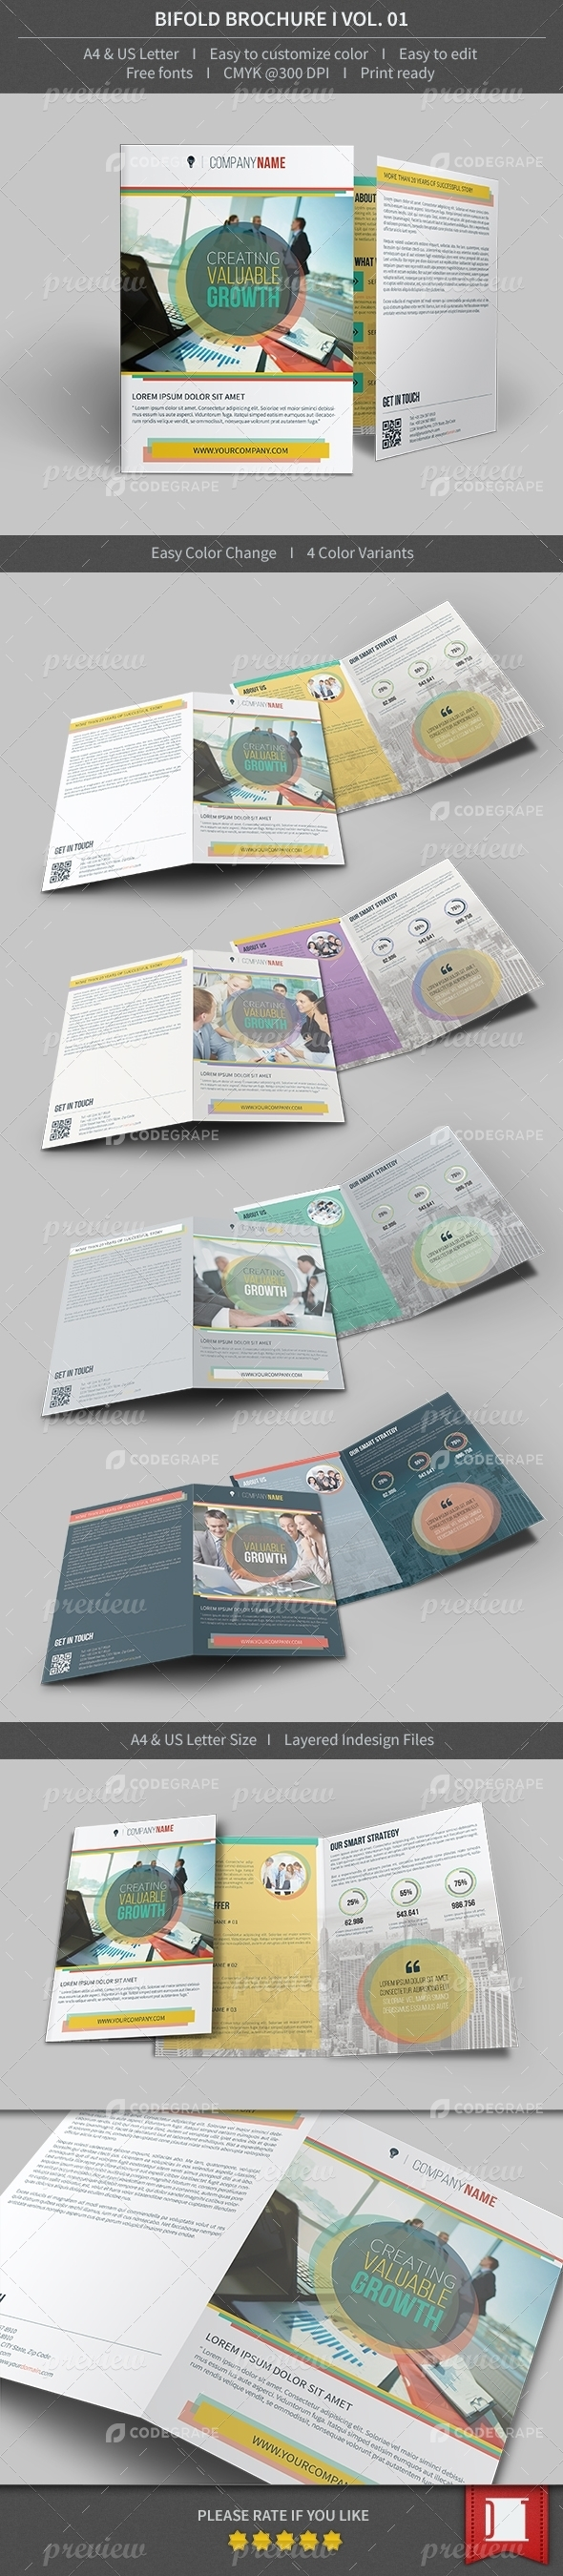 Bifold Brochure - Volume 01